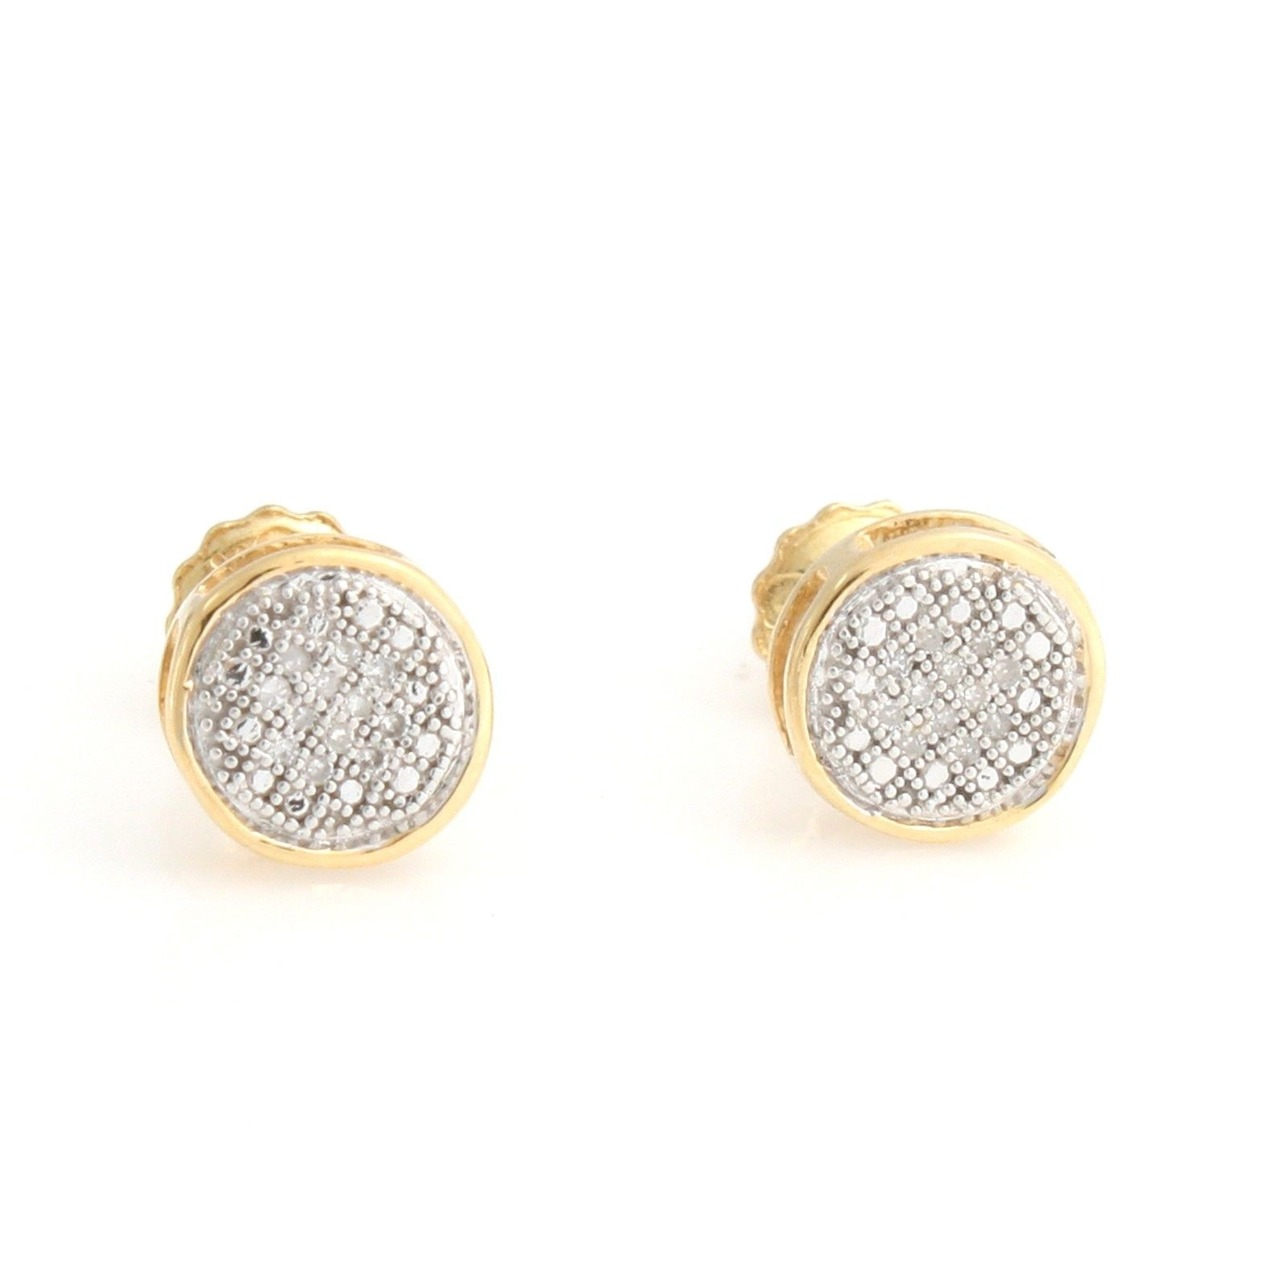 18K Yellow Gold Plated Sterling Silver Gold Natural Diamond Stud Earrings Q037 pair of zircon gold plated stud earrings